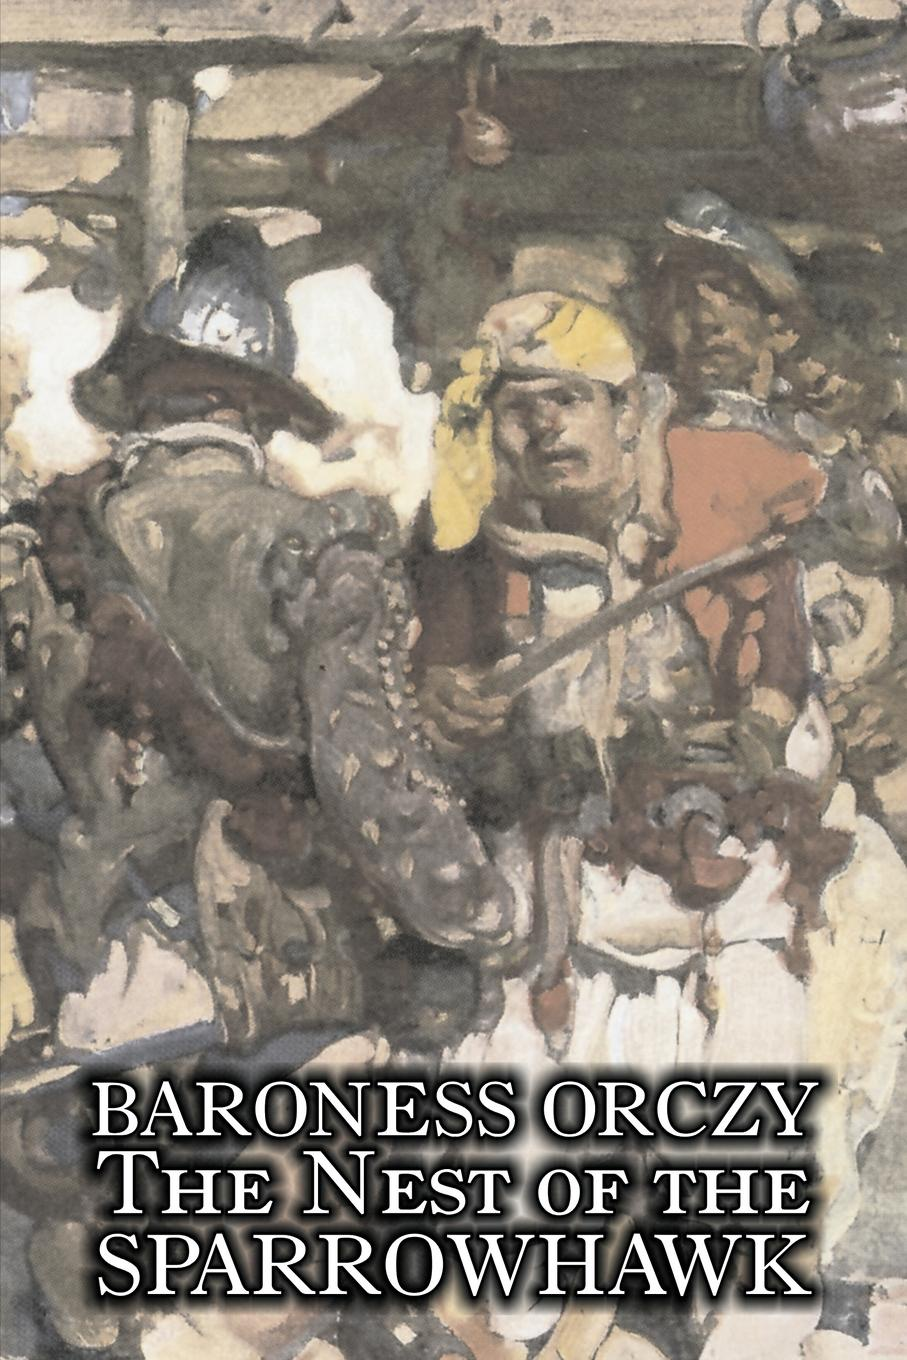 Baroness Orczy, Baroness Emmuska Orczy The Nest of the Sparrowhawk by Baroness Orczy Juvenile Fiction, Action & Adventure emmuska orczy sir percy leads the band